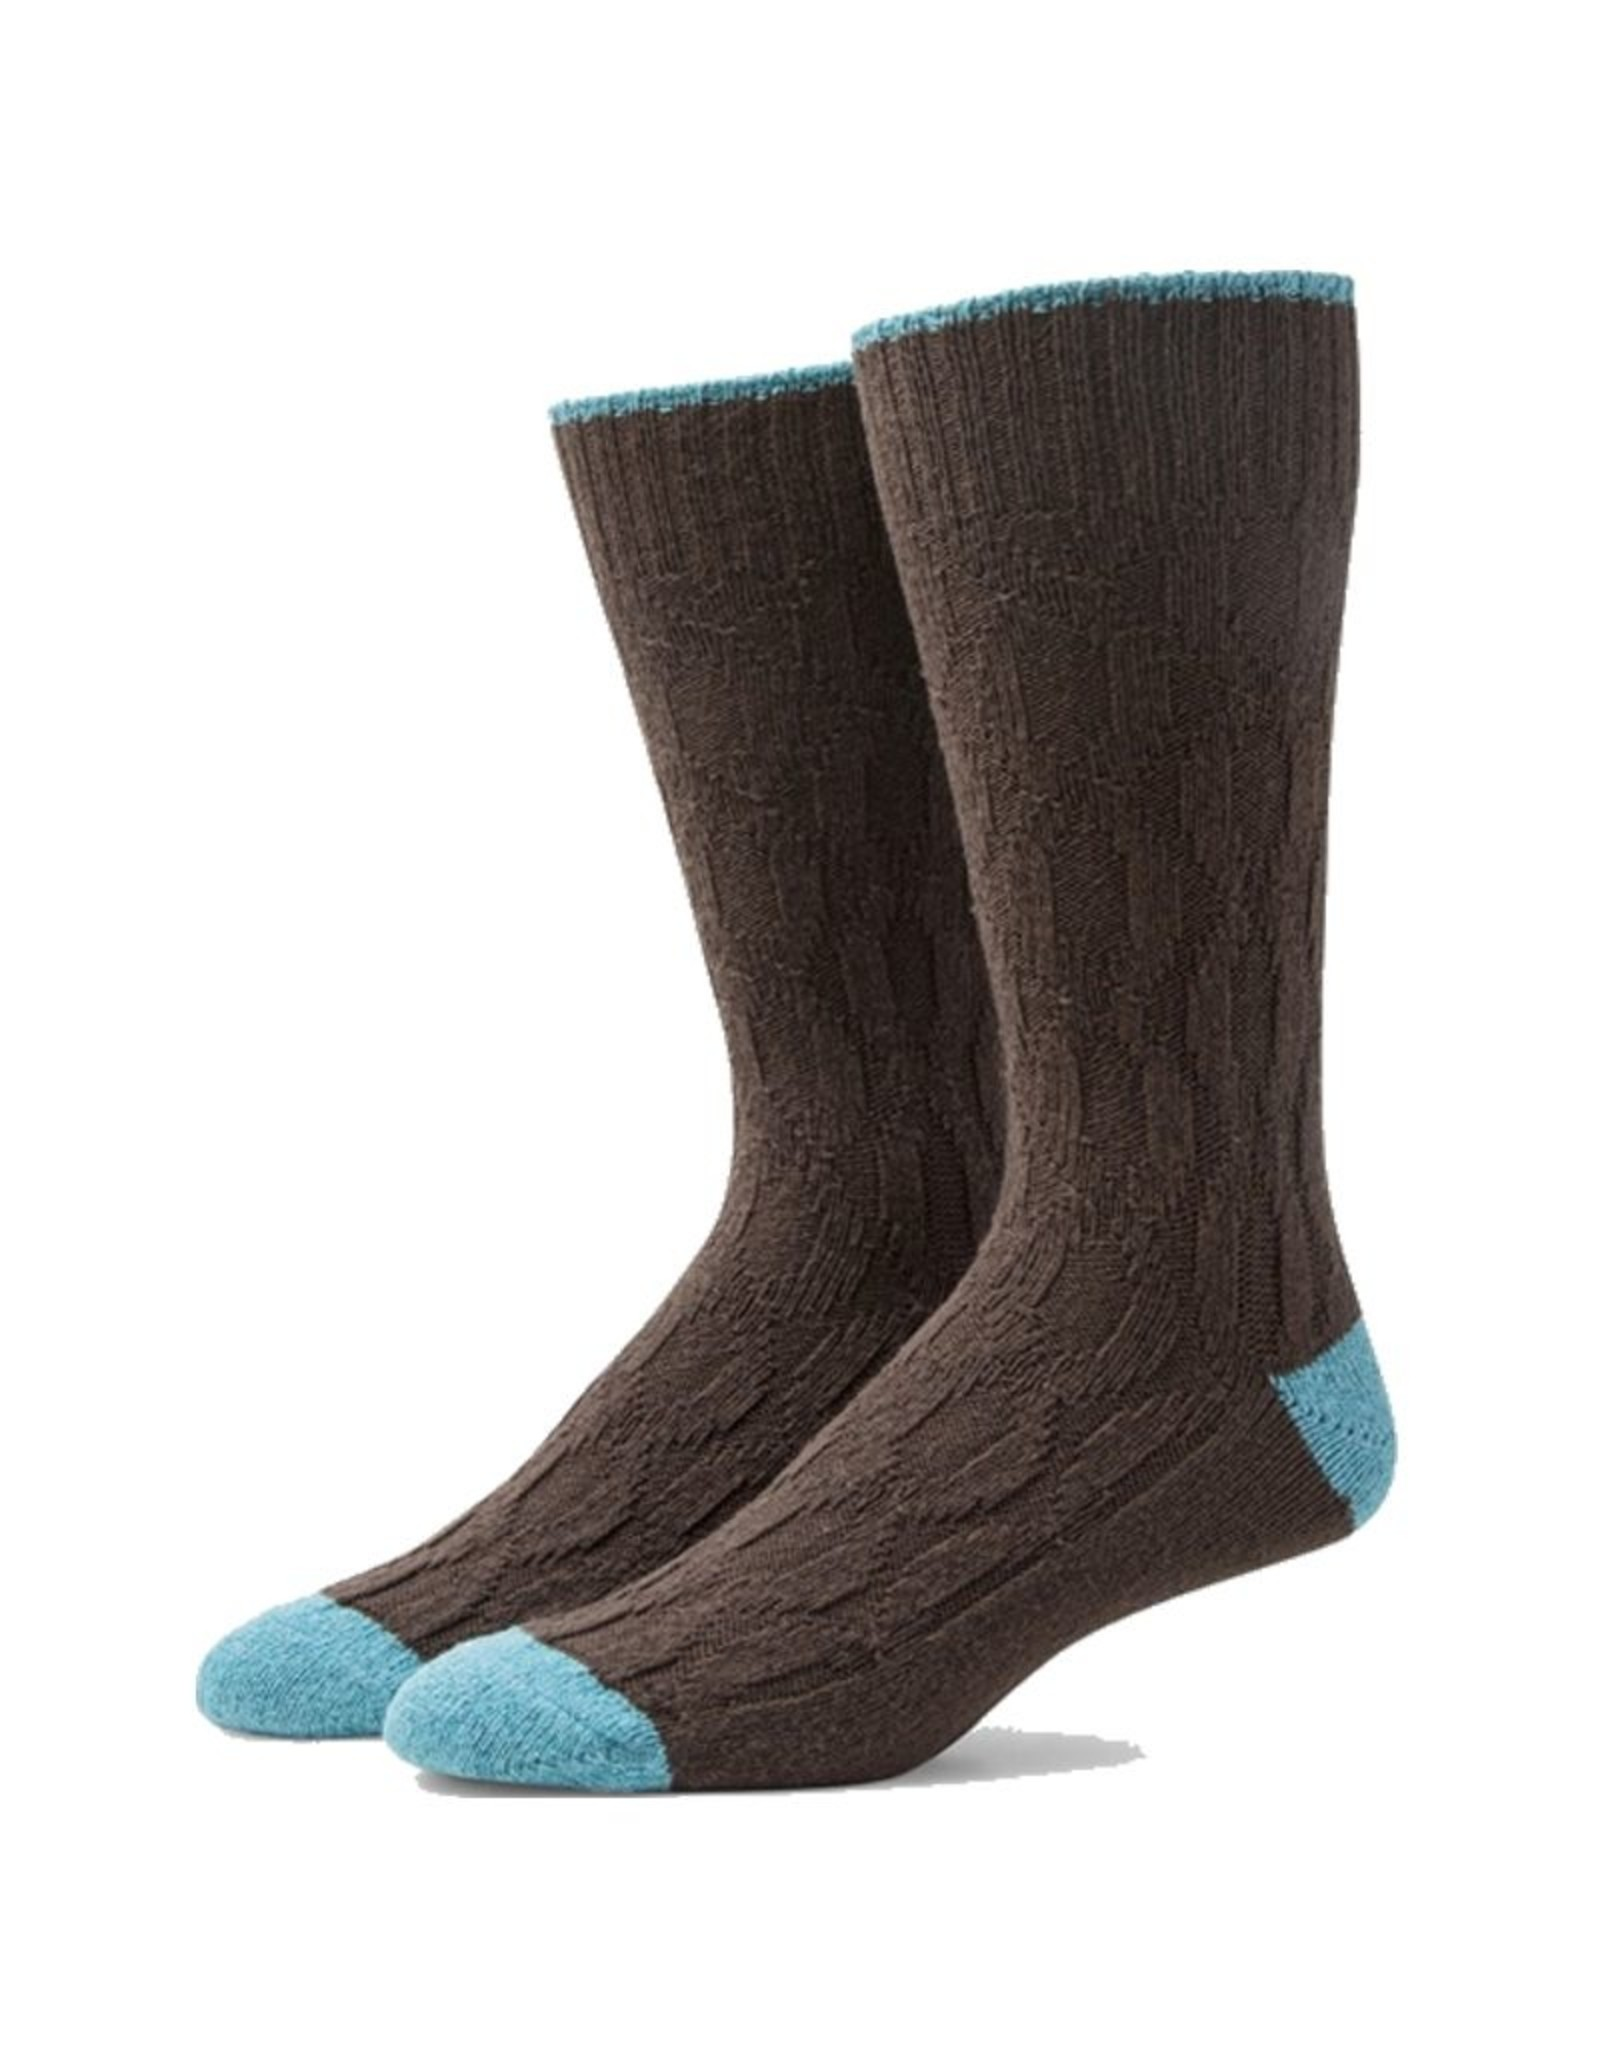 B.ella/Standard Merch Tone Cable socks